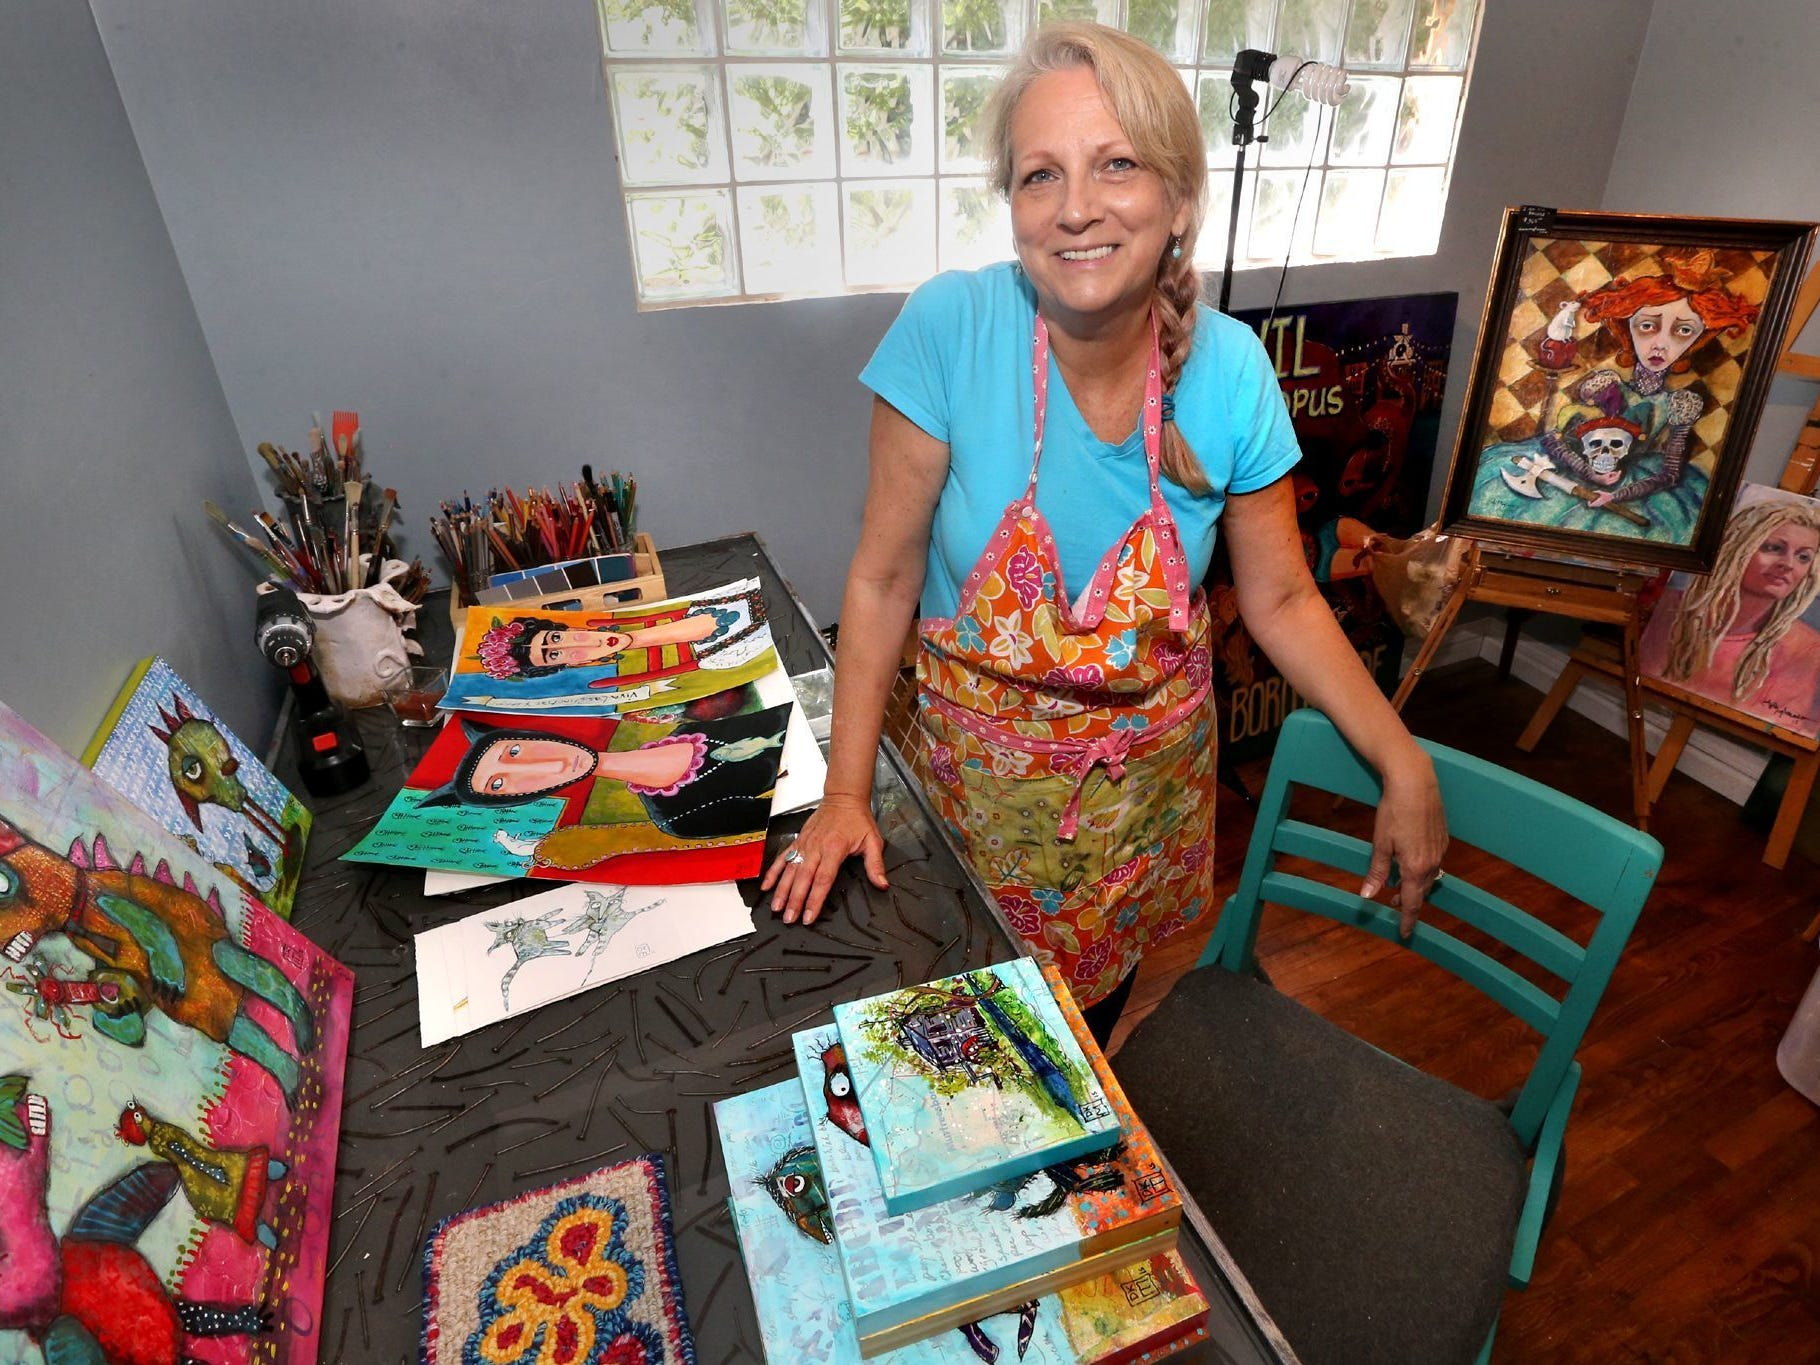 Dawna Magliacano is surrounded by a variety of her works of art in her local studio.